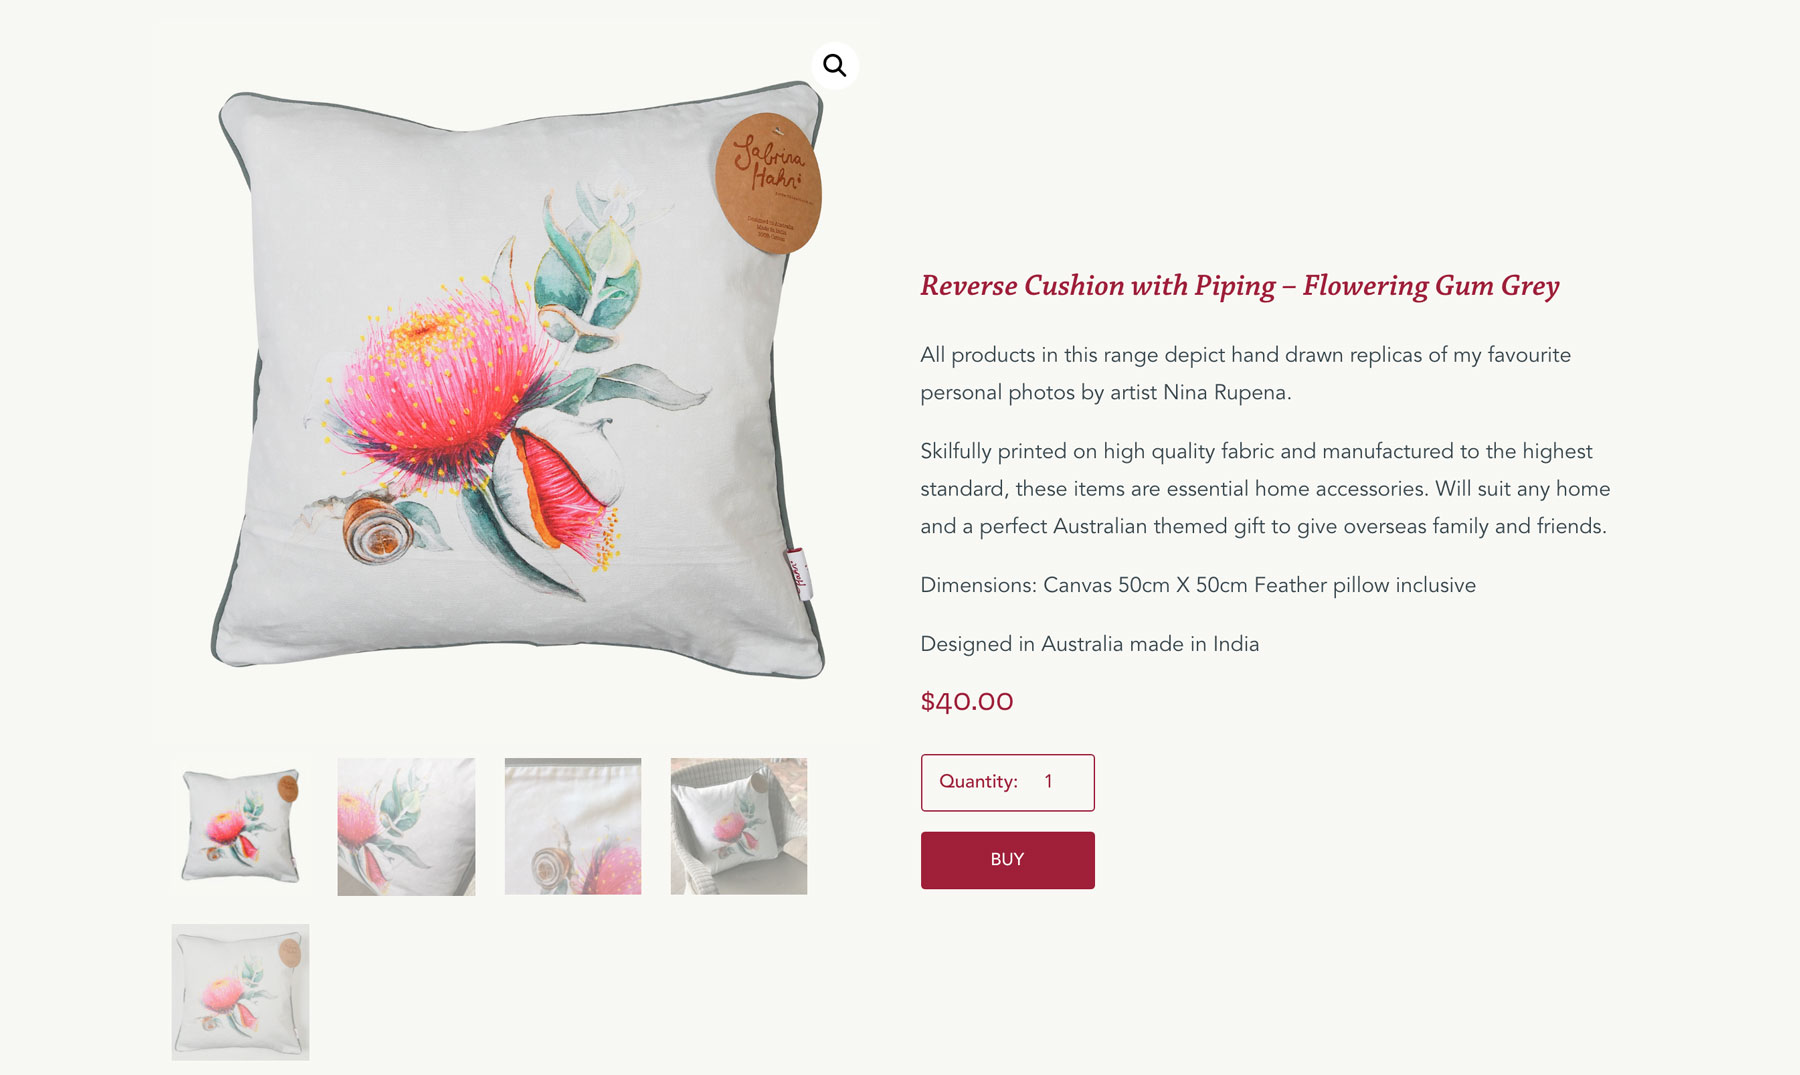 Reverse-Cushion-with-Piping-–-Flowering-Gum-Grey-–-Sabrina-Hahn-–-Hort-with-Heart-WEB